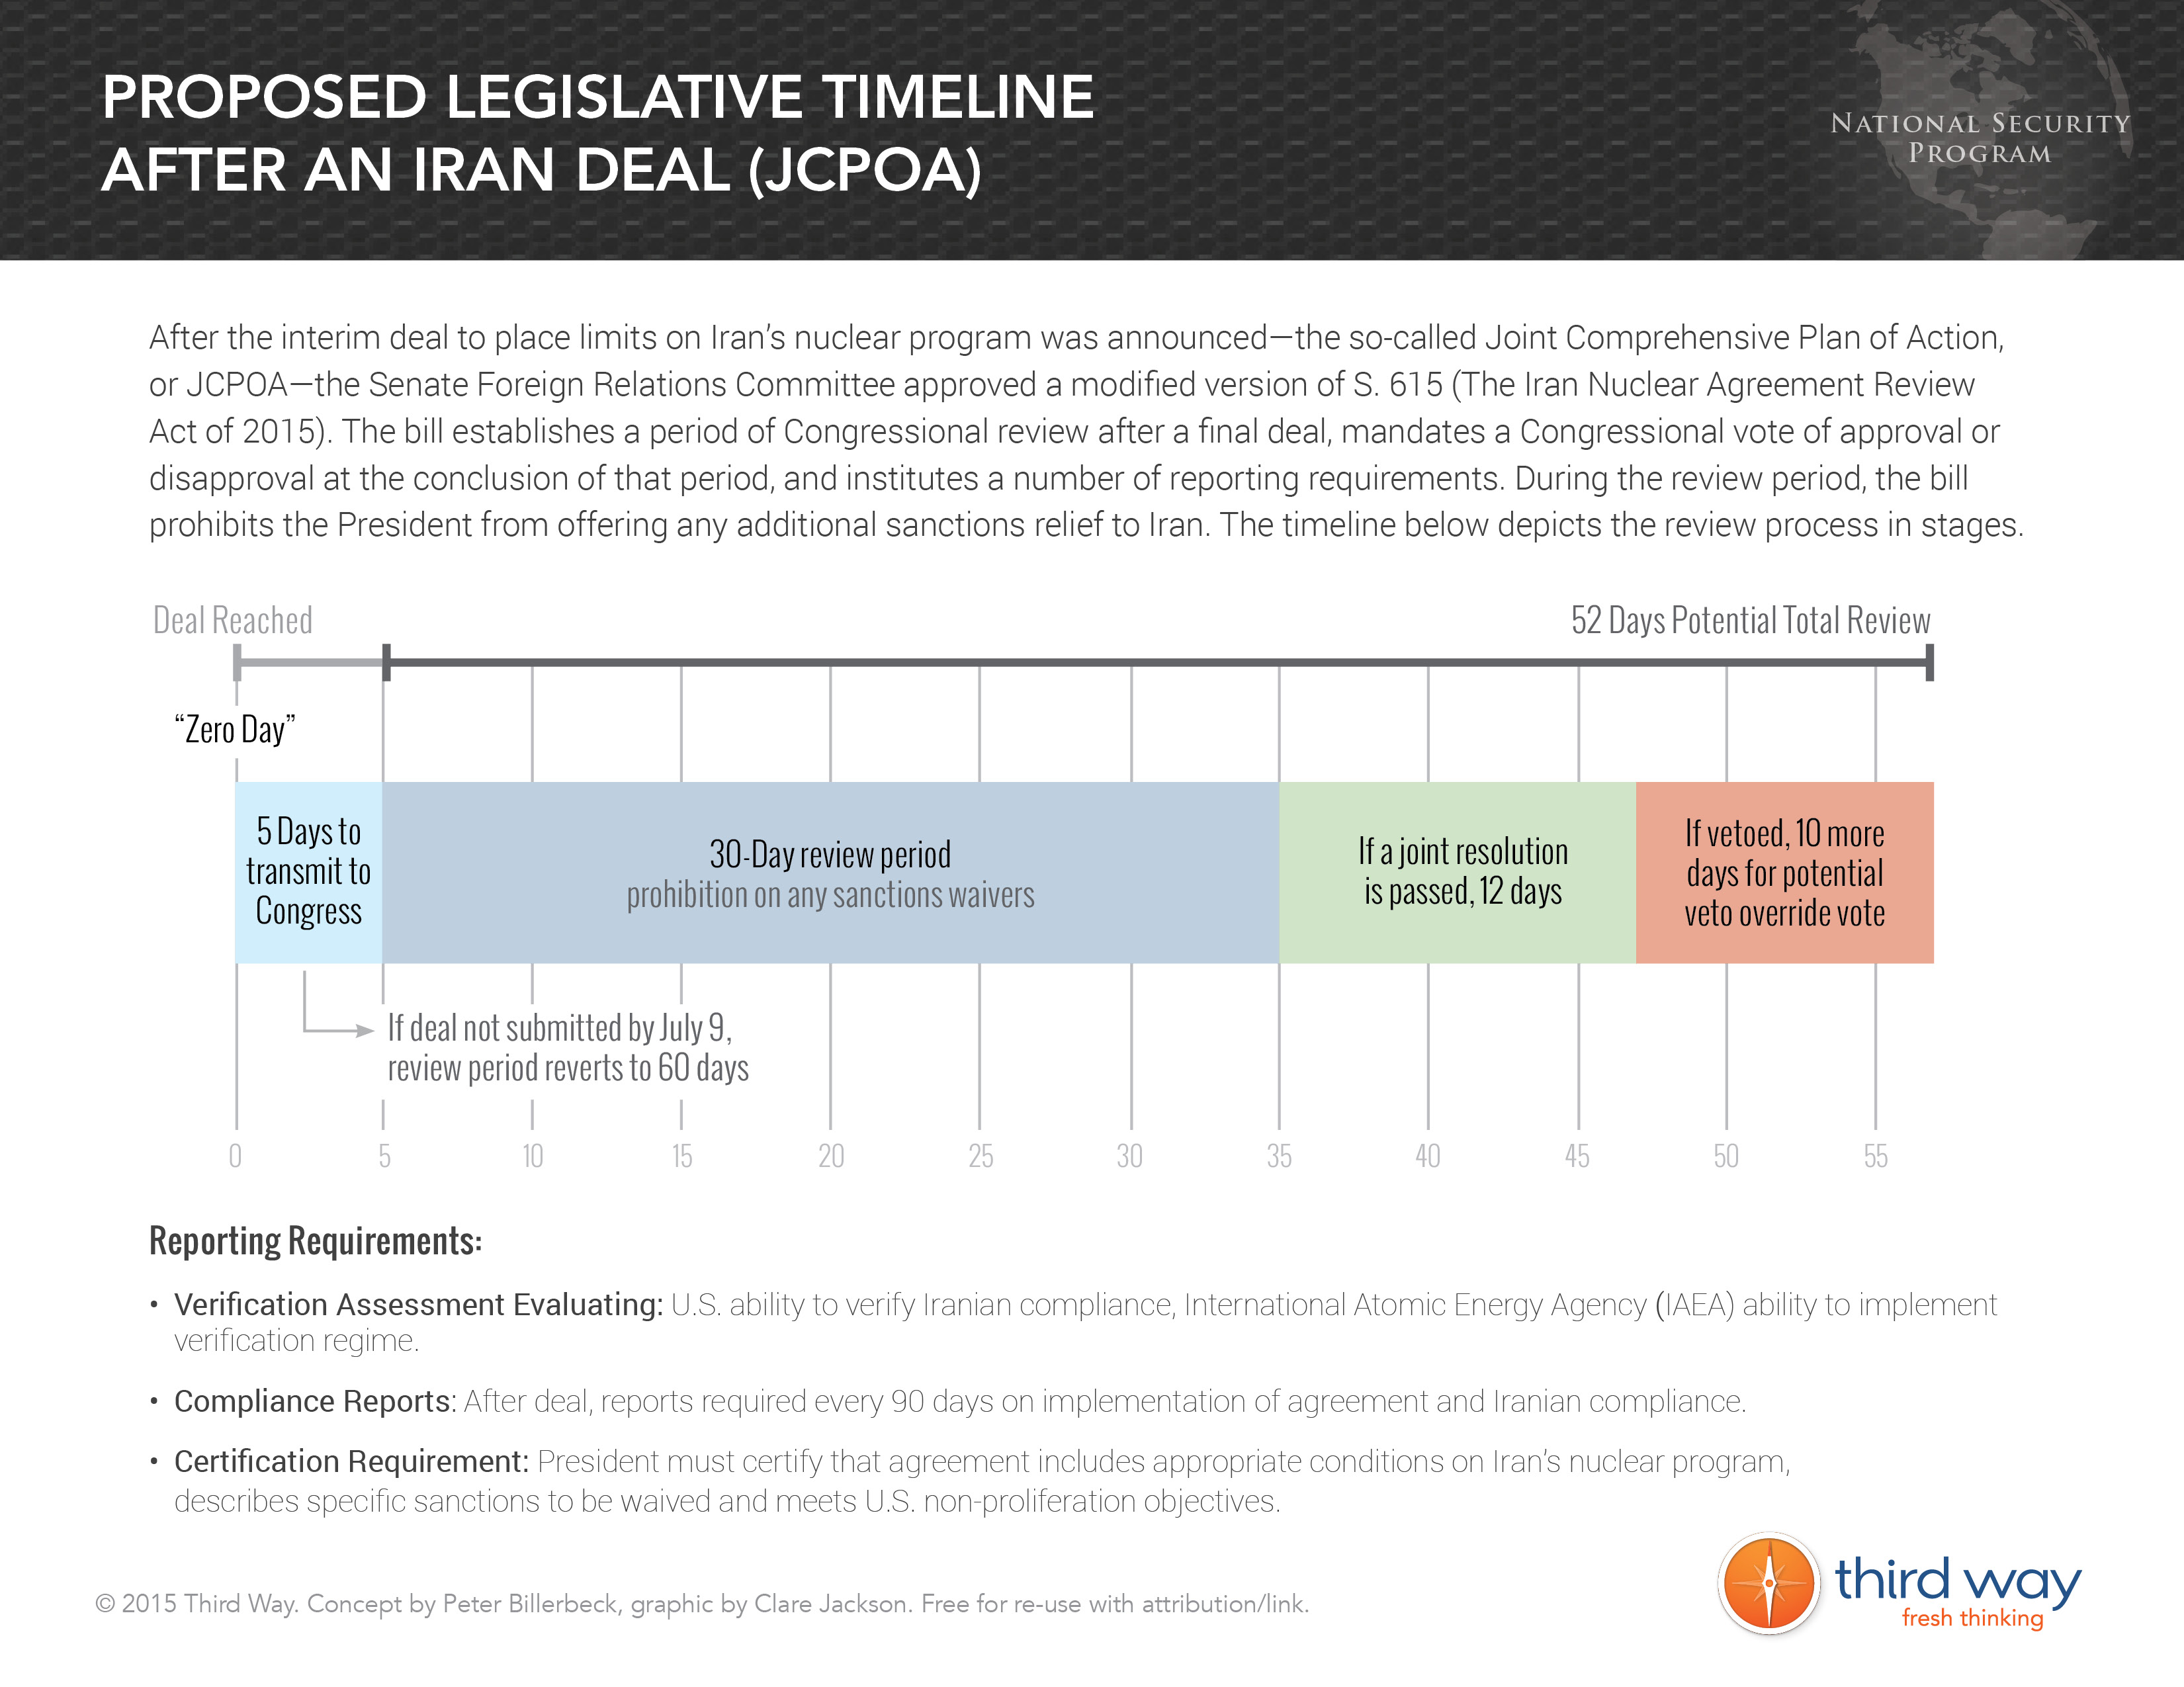 Proposed Legislative Timeline After an Iran Deal (JCPOA)